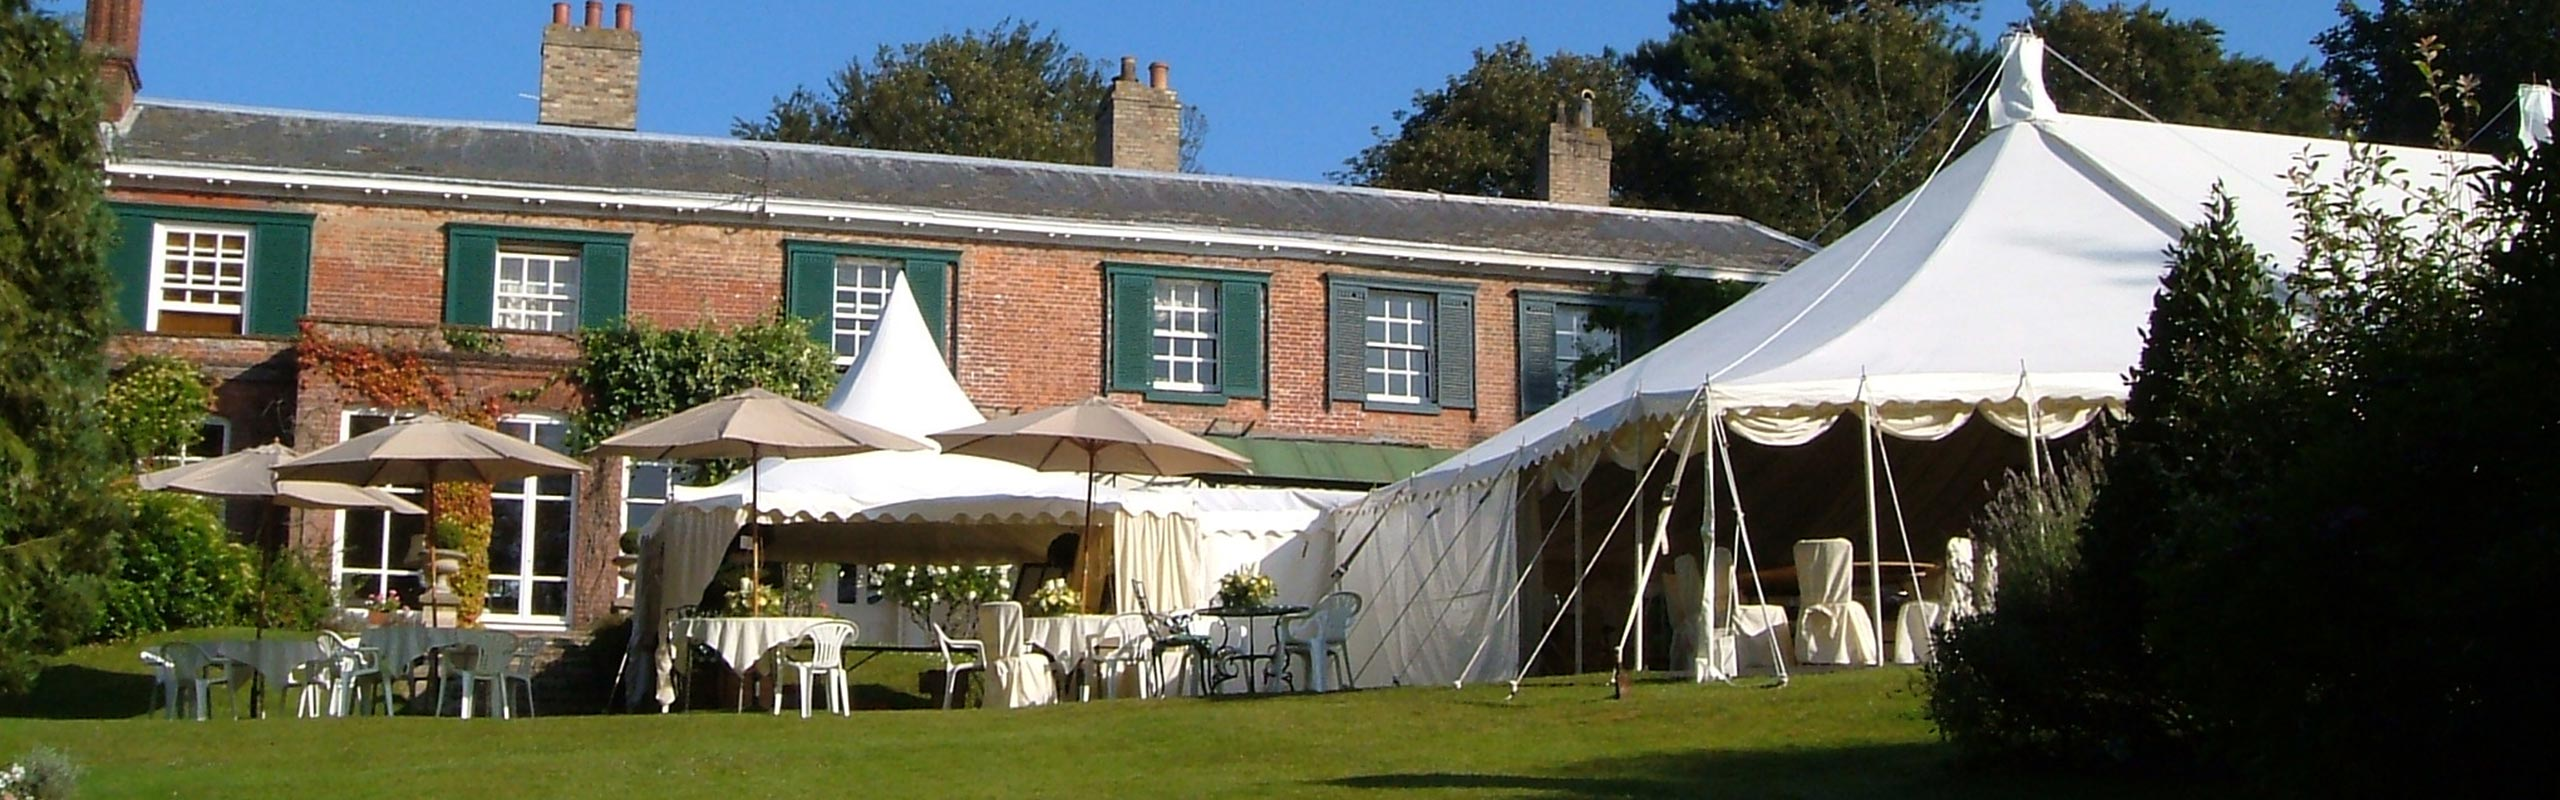 Marquee hire In Bury St Edmunds